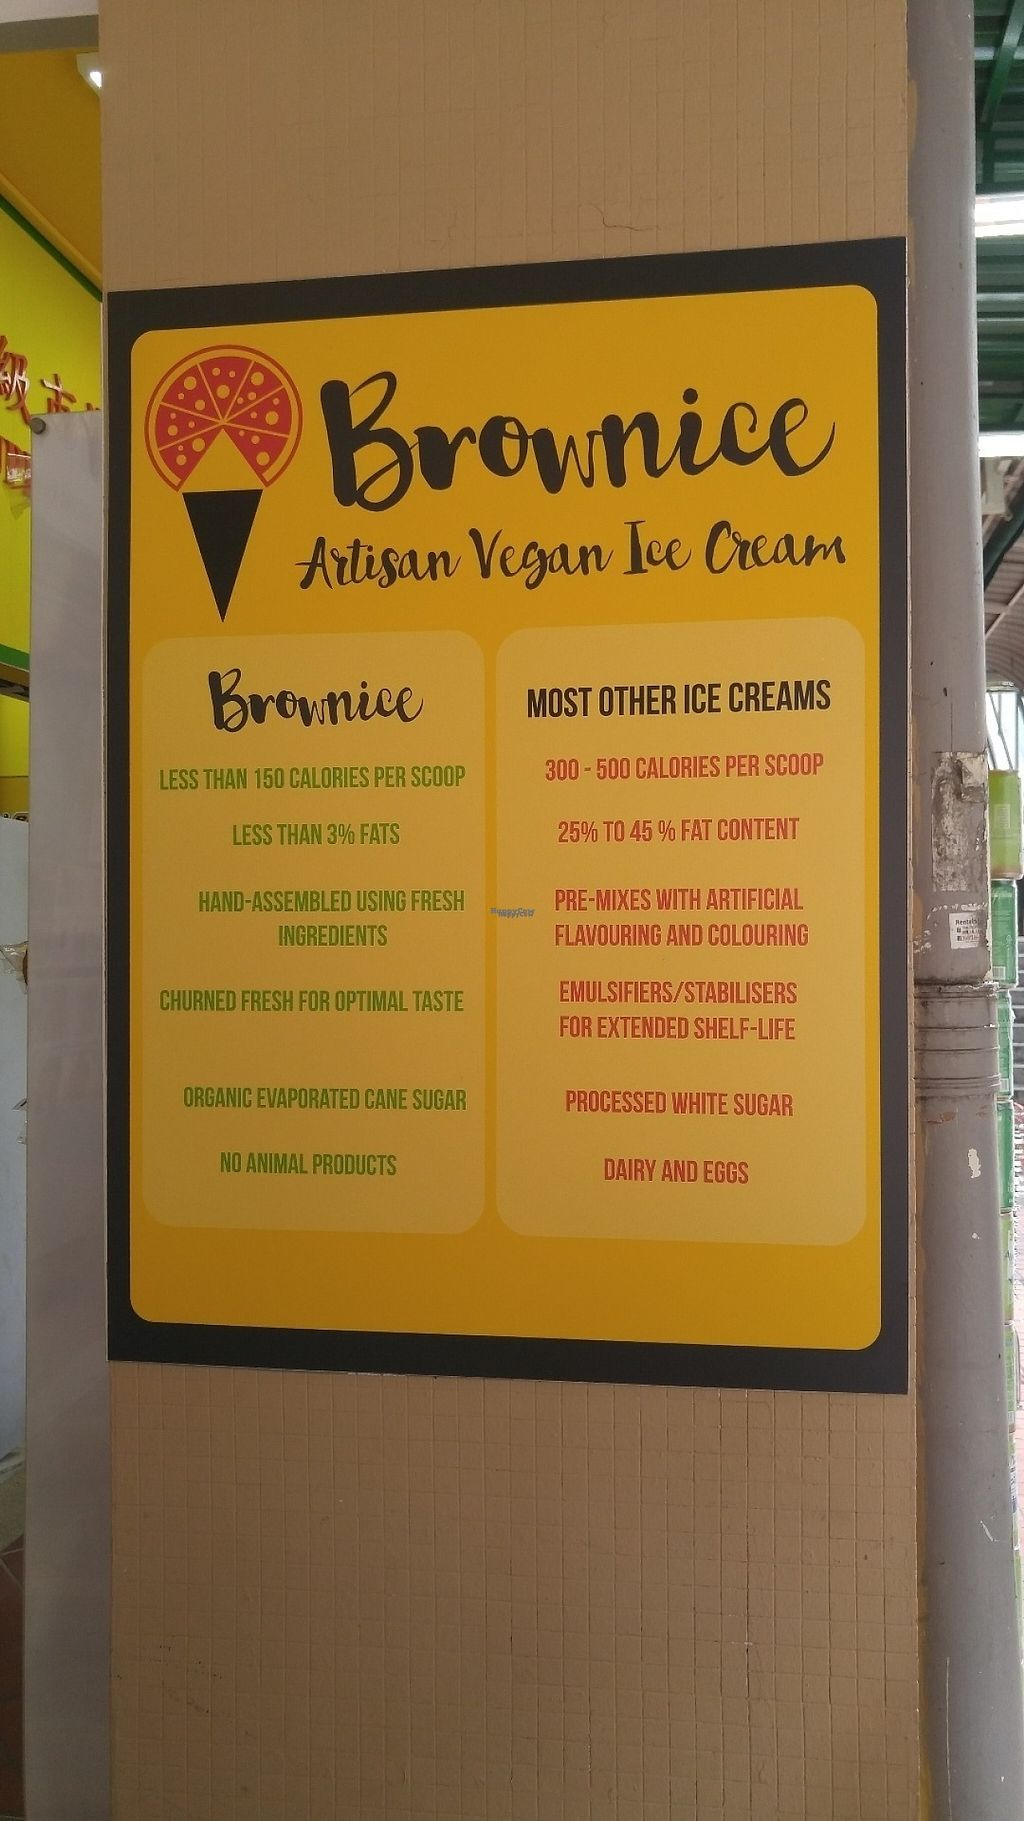 "Photo of Brownice Italian Bistro  by <a href=""/members/profile/AmandaChez"">AmandaChez</a> <br/>AMAZING ICE CREAM <br/> December 5, 2016  - <a href='/contact/abuse/image/59333/197732'>Report</a>"